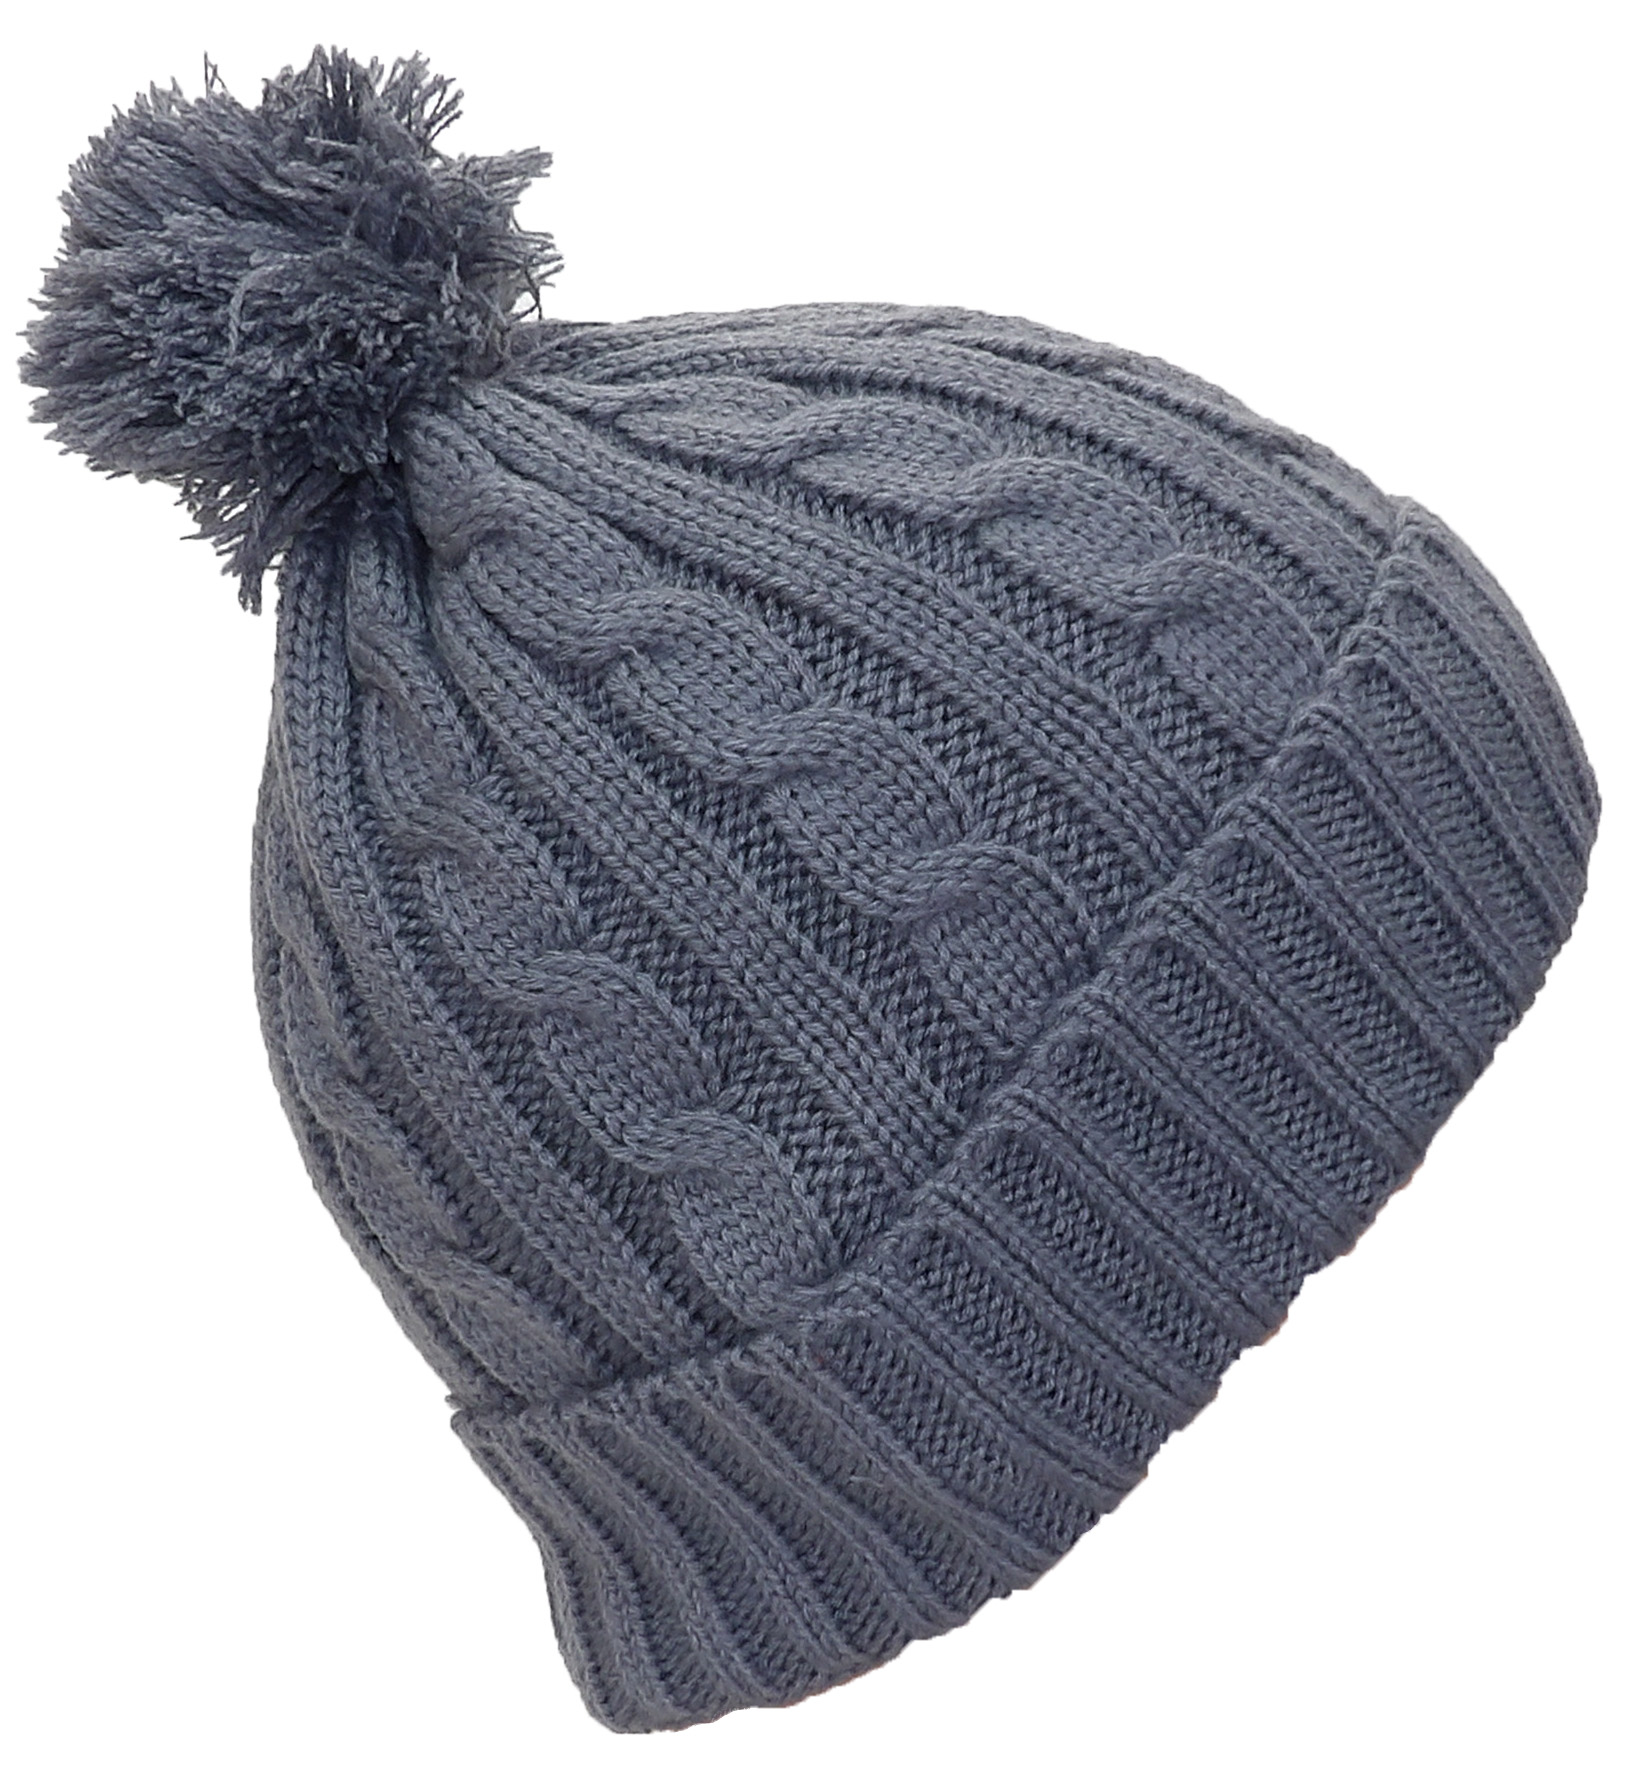 Best Winter Hats Womens Tight Cable Knit Cuffed Cap W Pom 640e30503